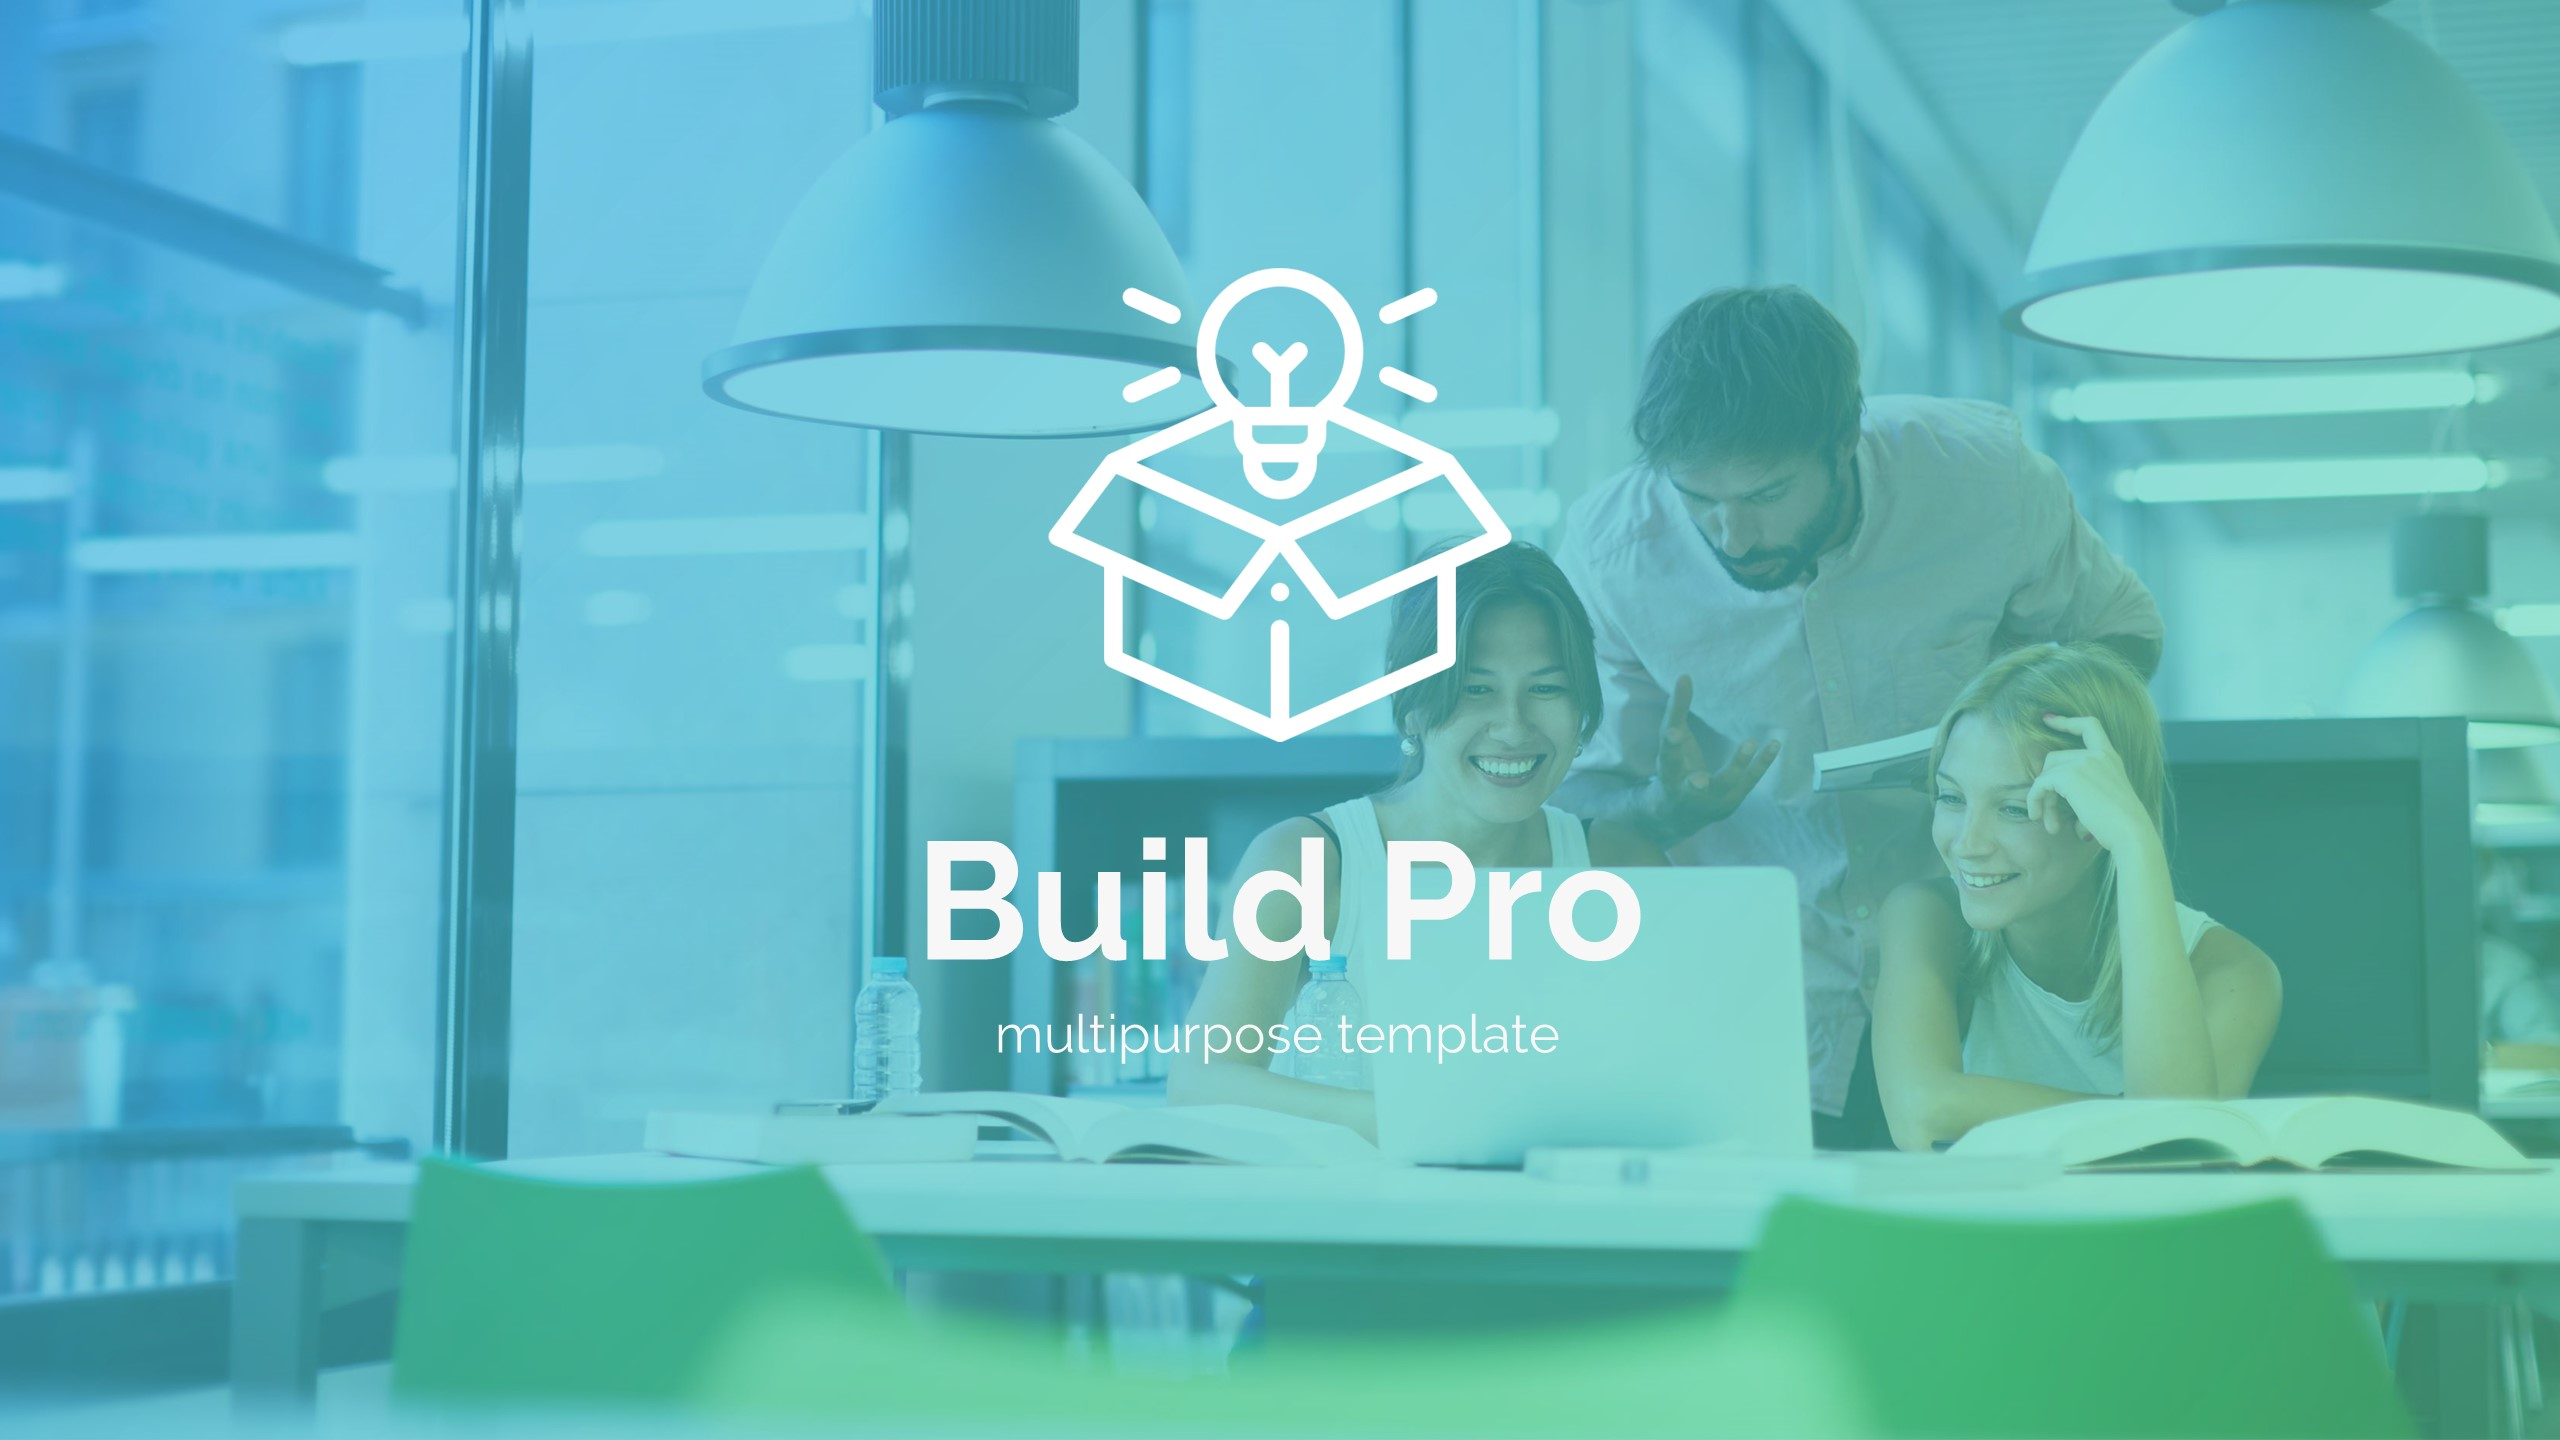 Build Pro Business Powerpoint Template